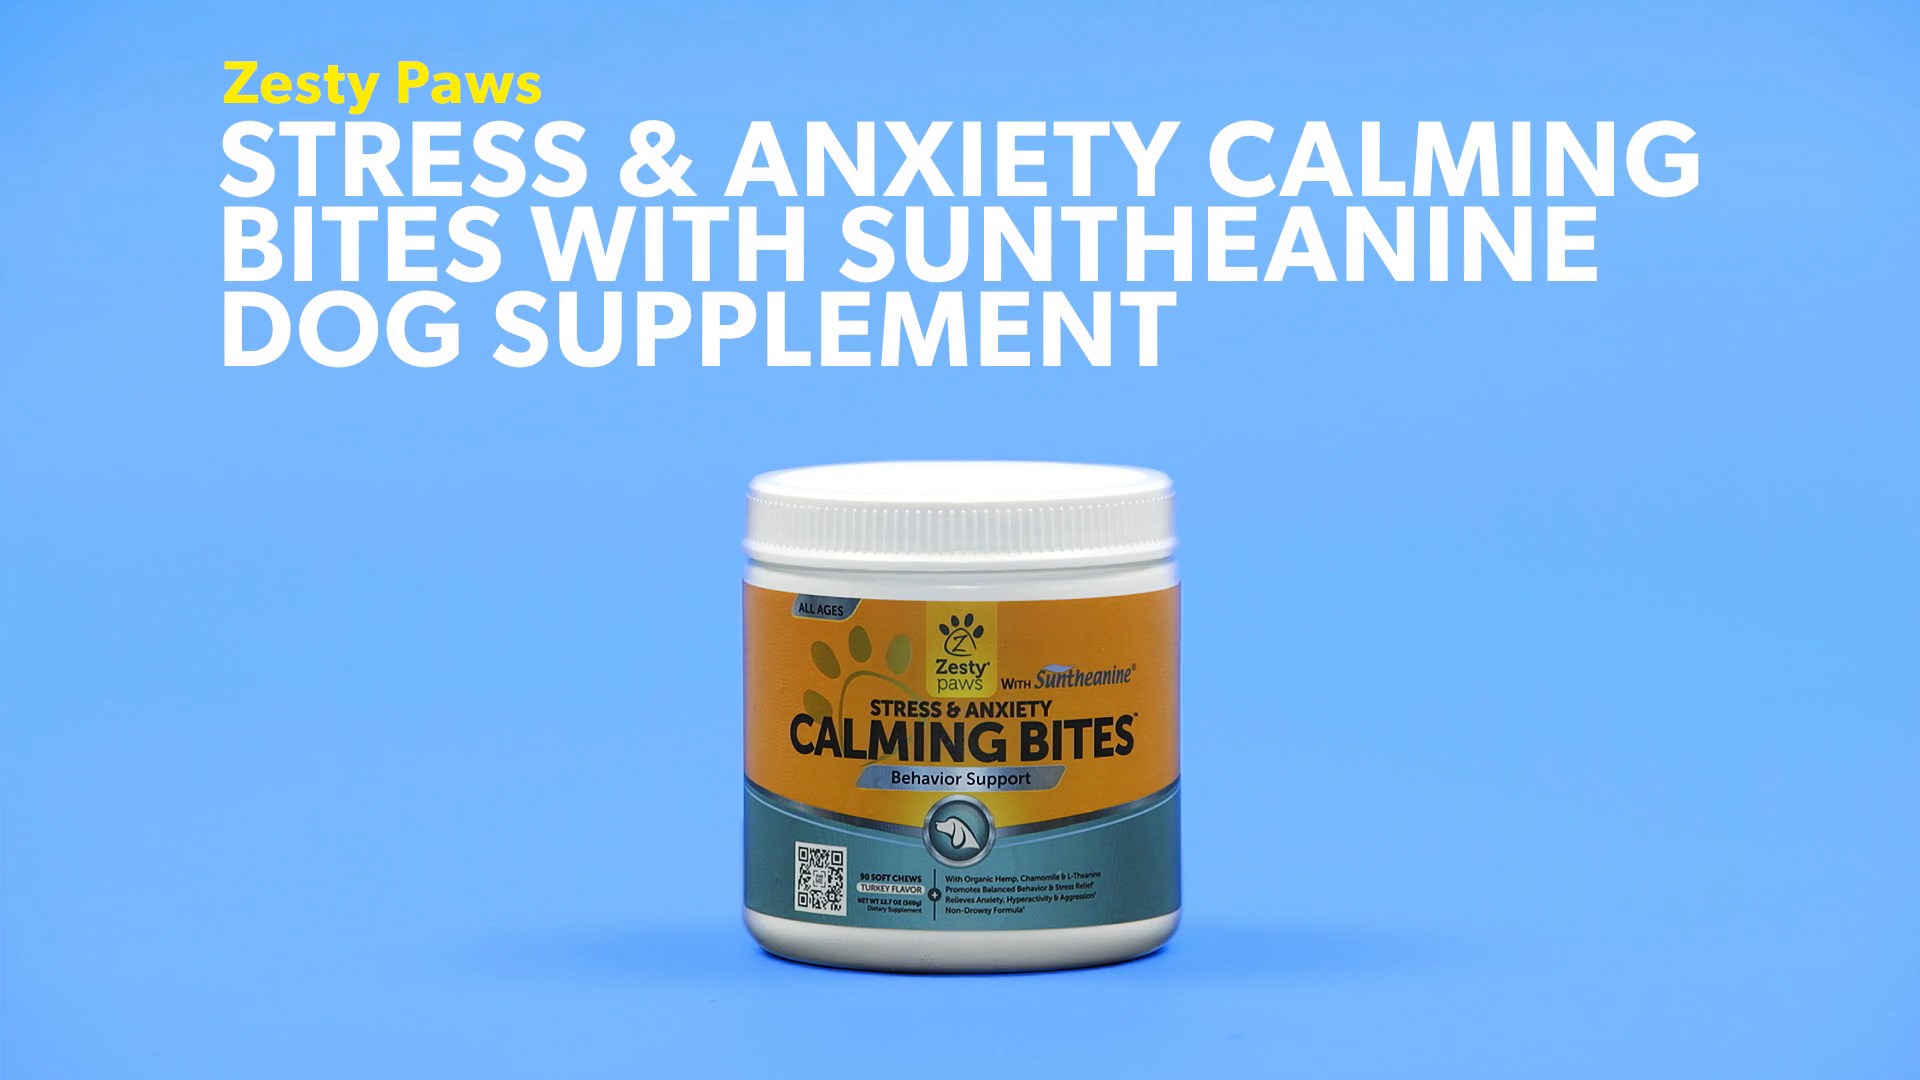 Zesty Paws Stress & Anxiety Calming Bites with Suntheanine Turkey Flavor  Dog Supplement, 90 count